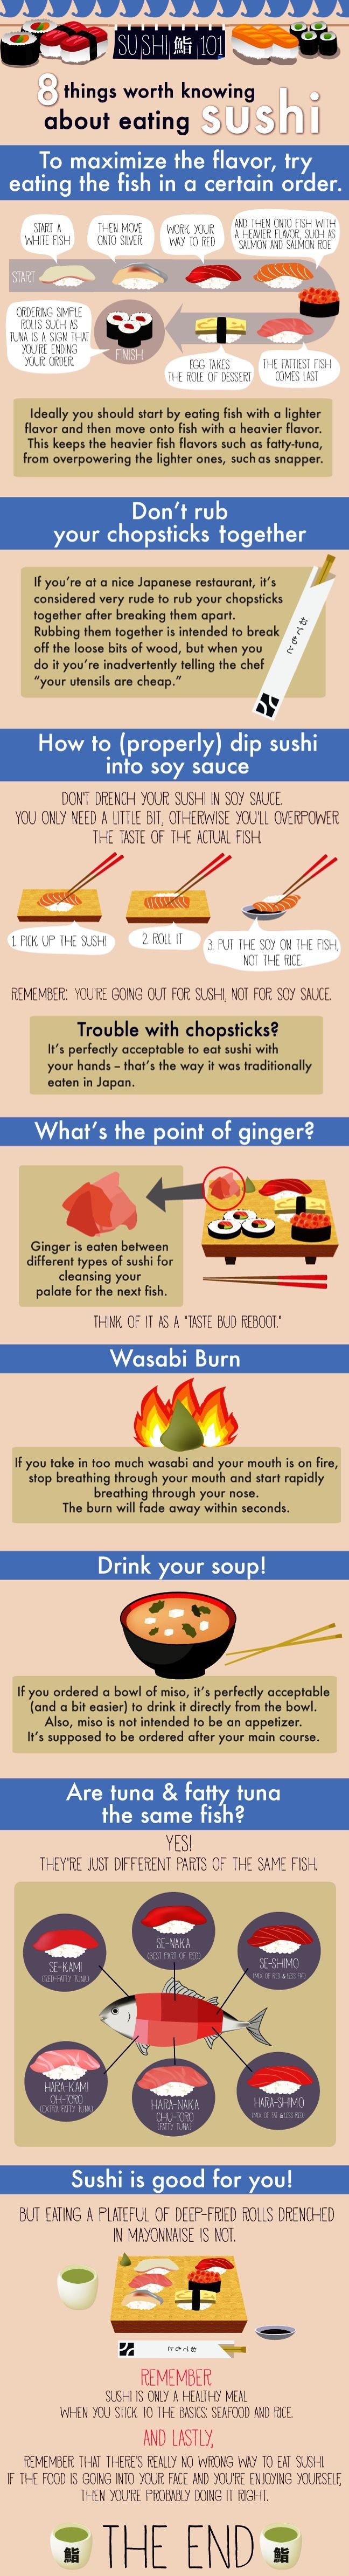 78 8 Things Worth Knowing About Eating Sushi